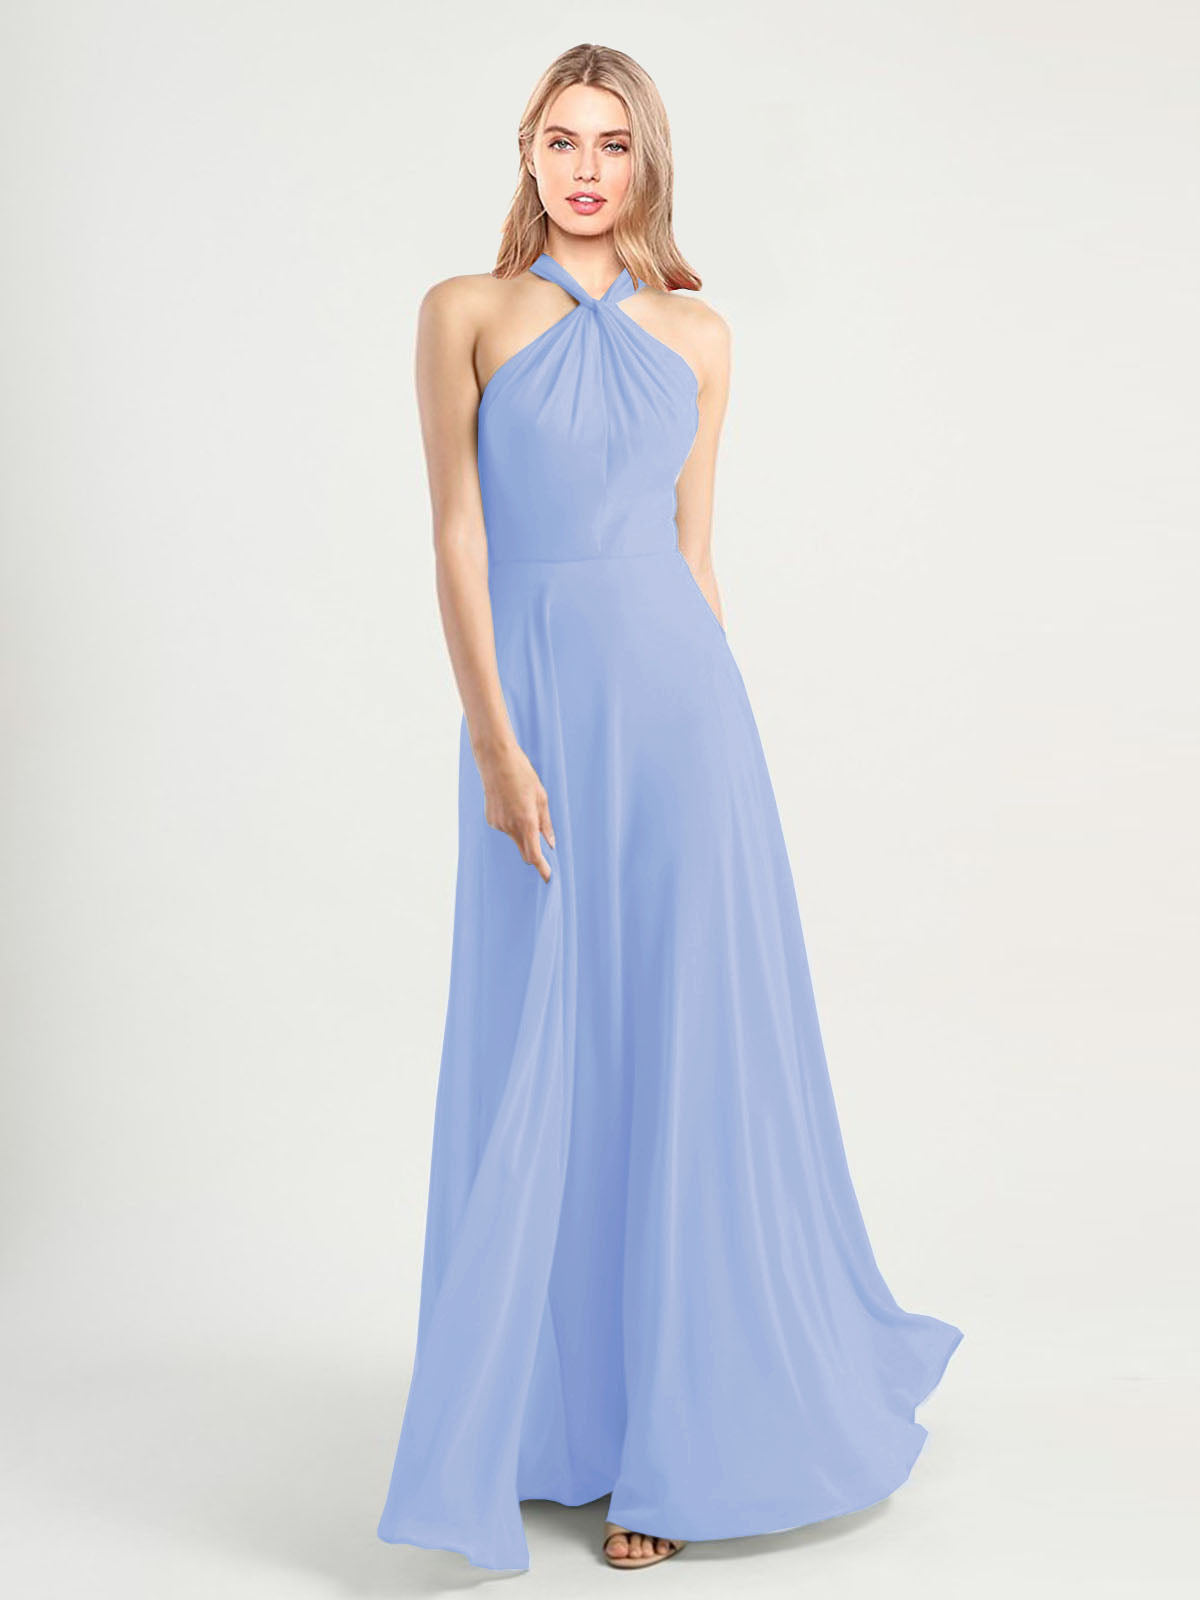 Long A-Line High Neck, Halter Sleeveless Lavender Chiffon Bridesmaid Dress Yoli